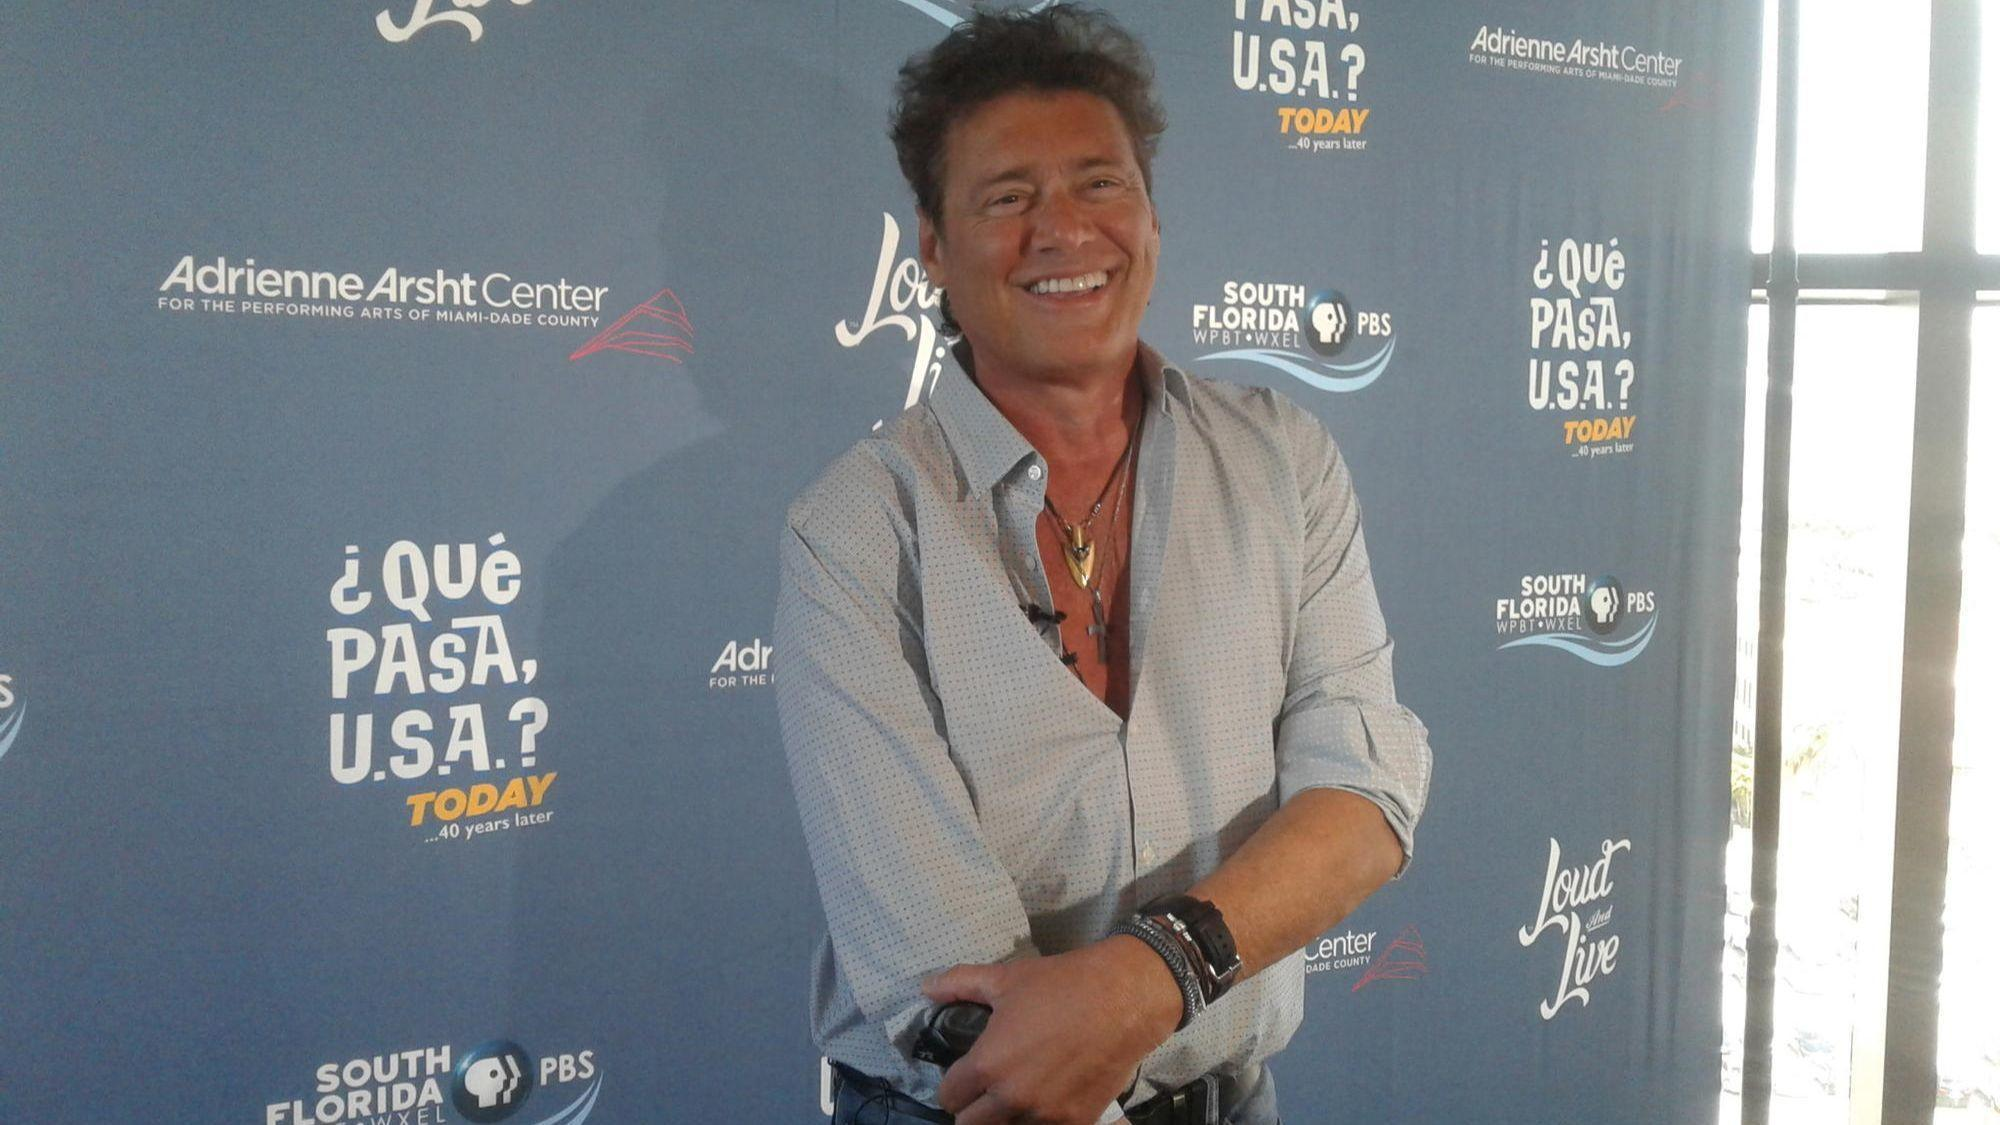 Miami's Steven Bauer to join the cast of '¿Que Pasa, USA?' stage show in May